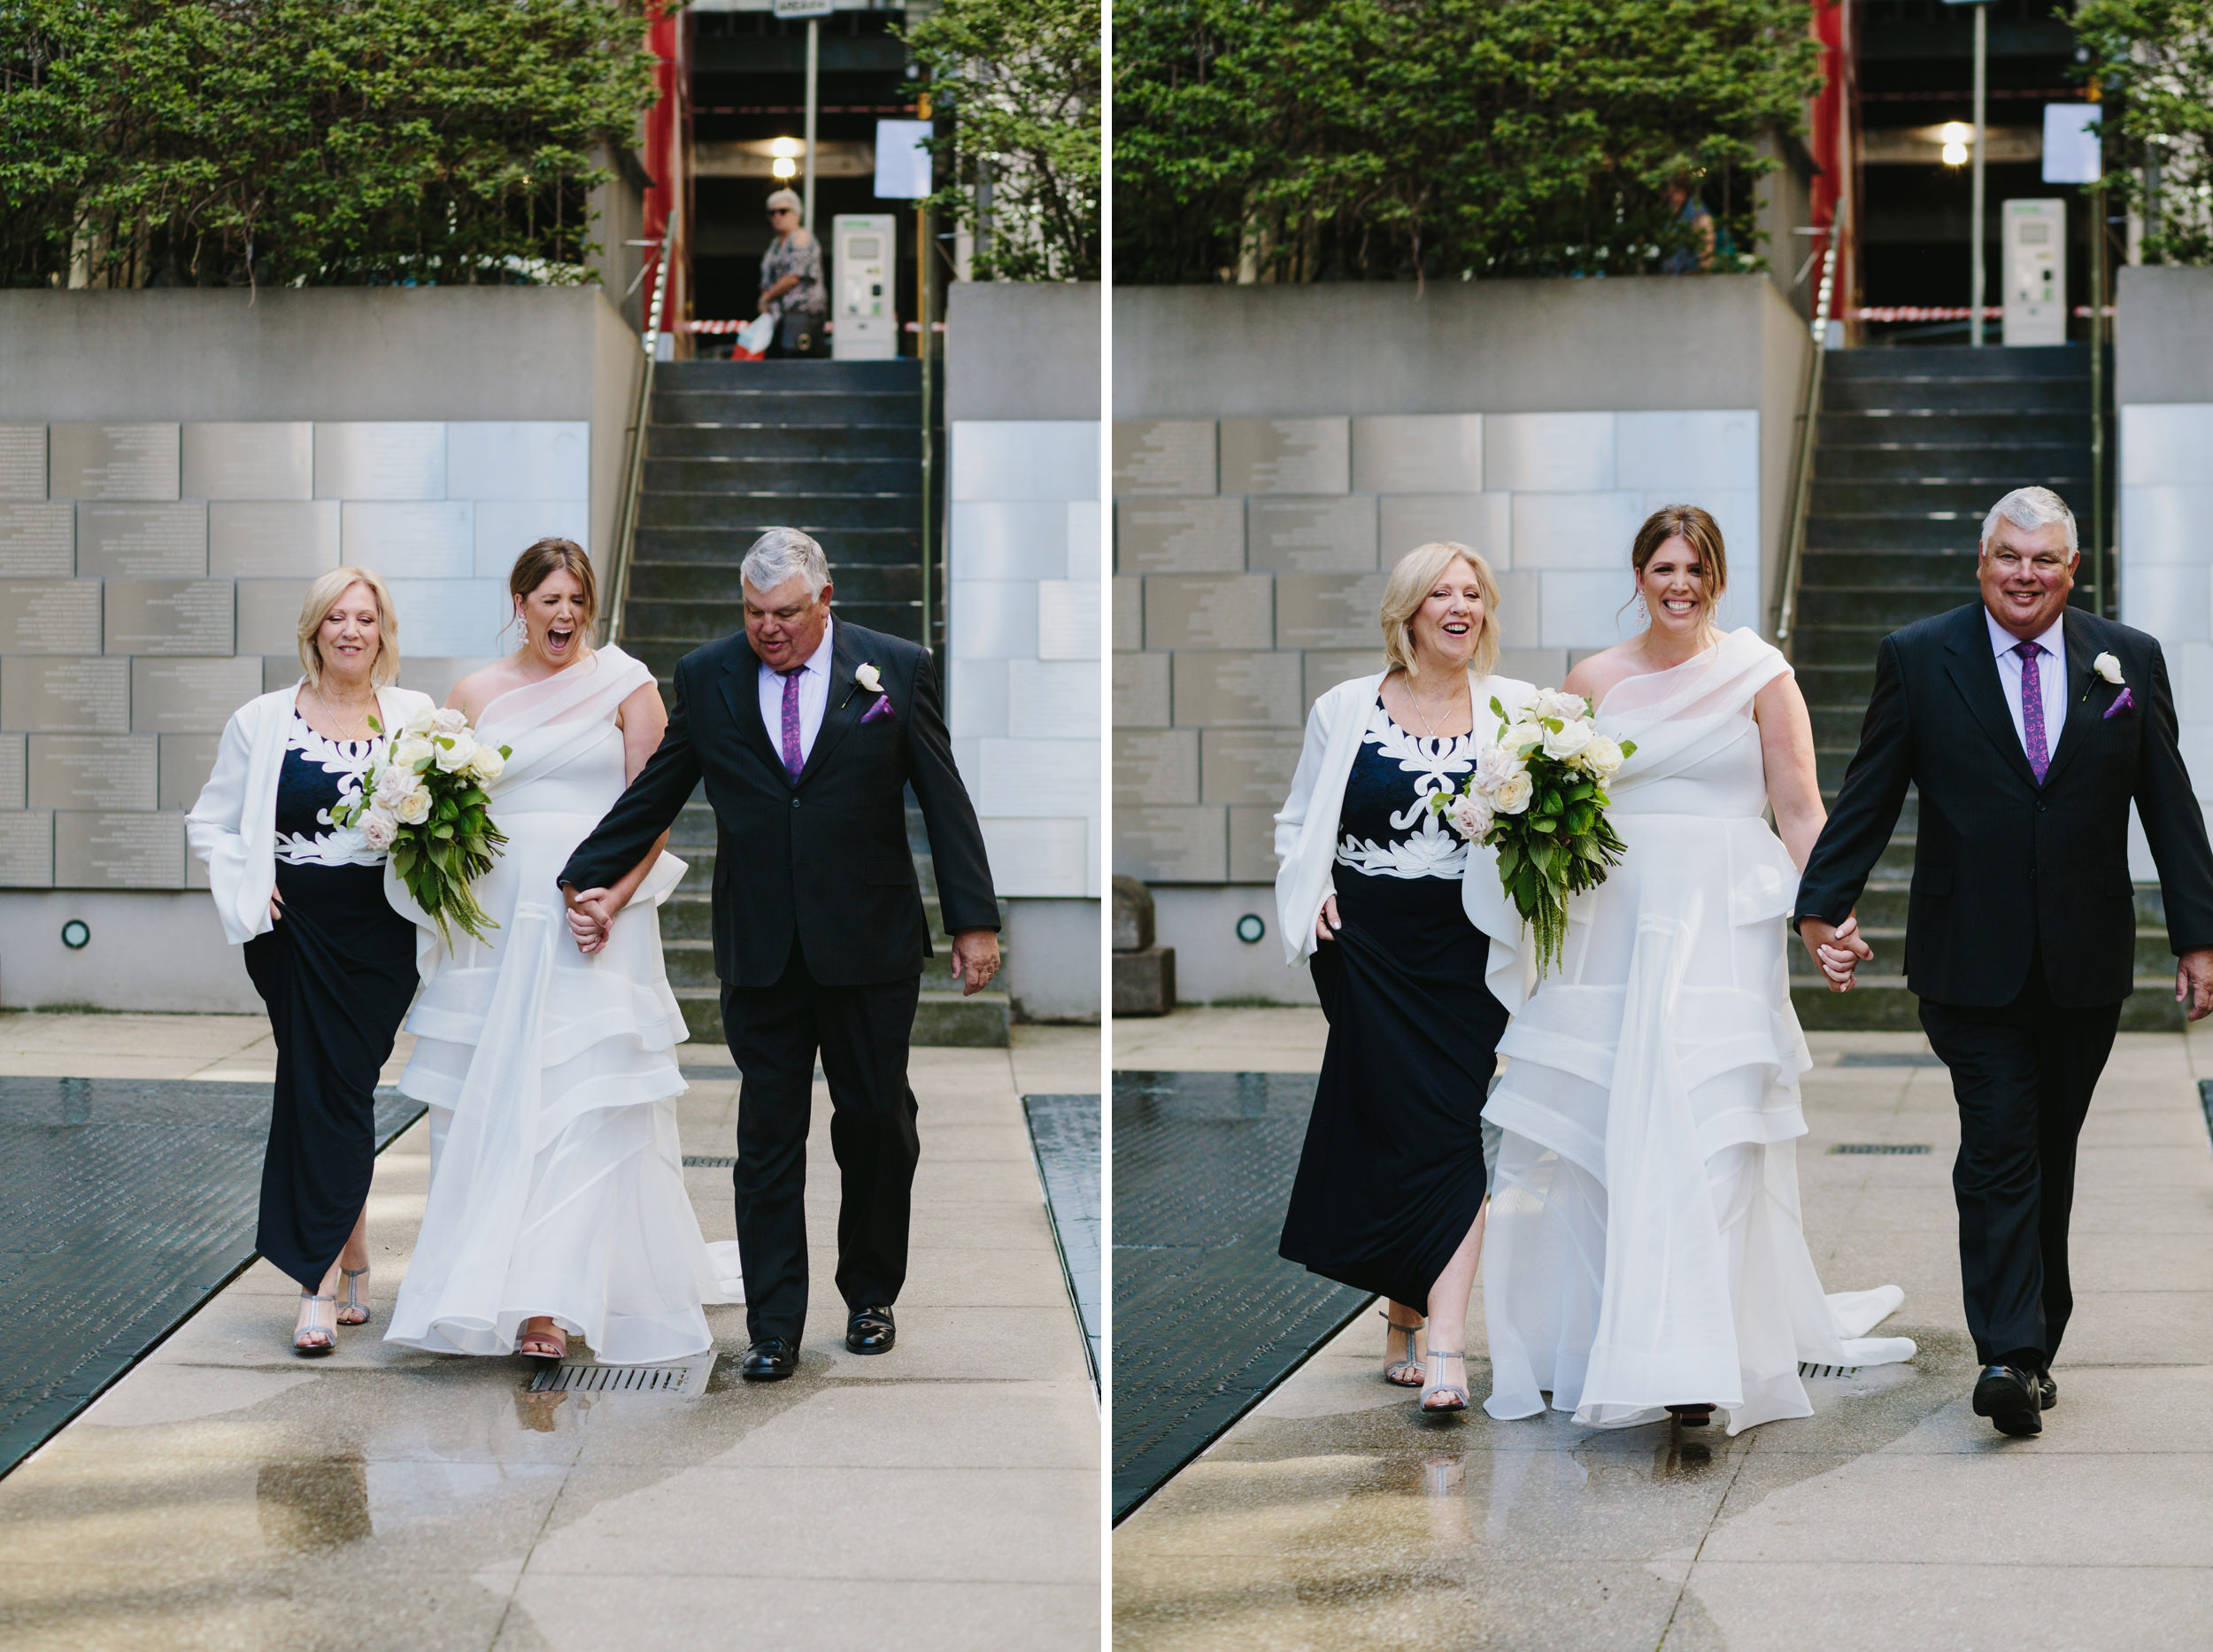 Melbourne_City_Rooftop_Wedding_Tyson_Brigette050.JPG